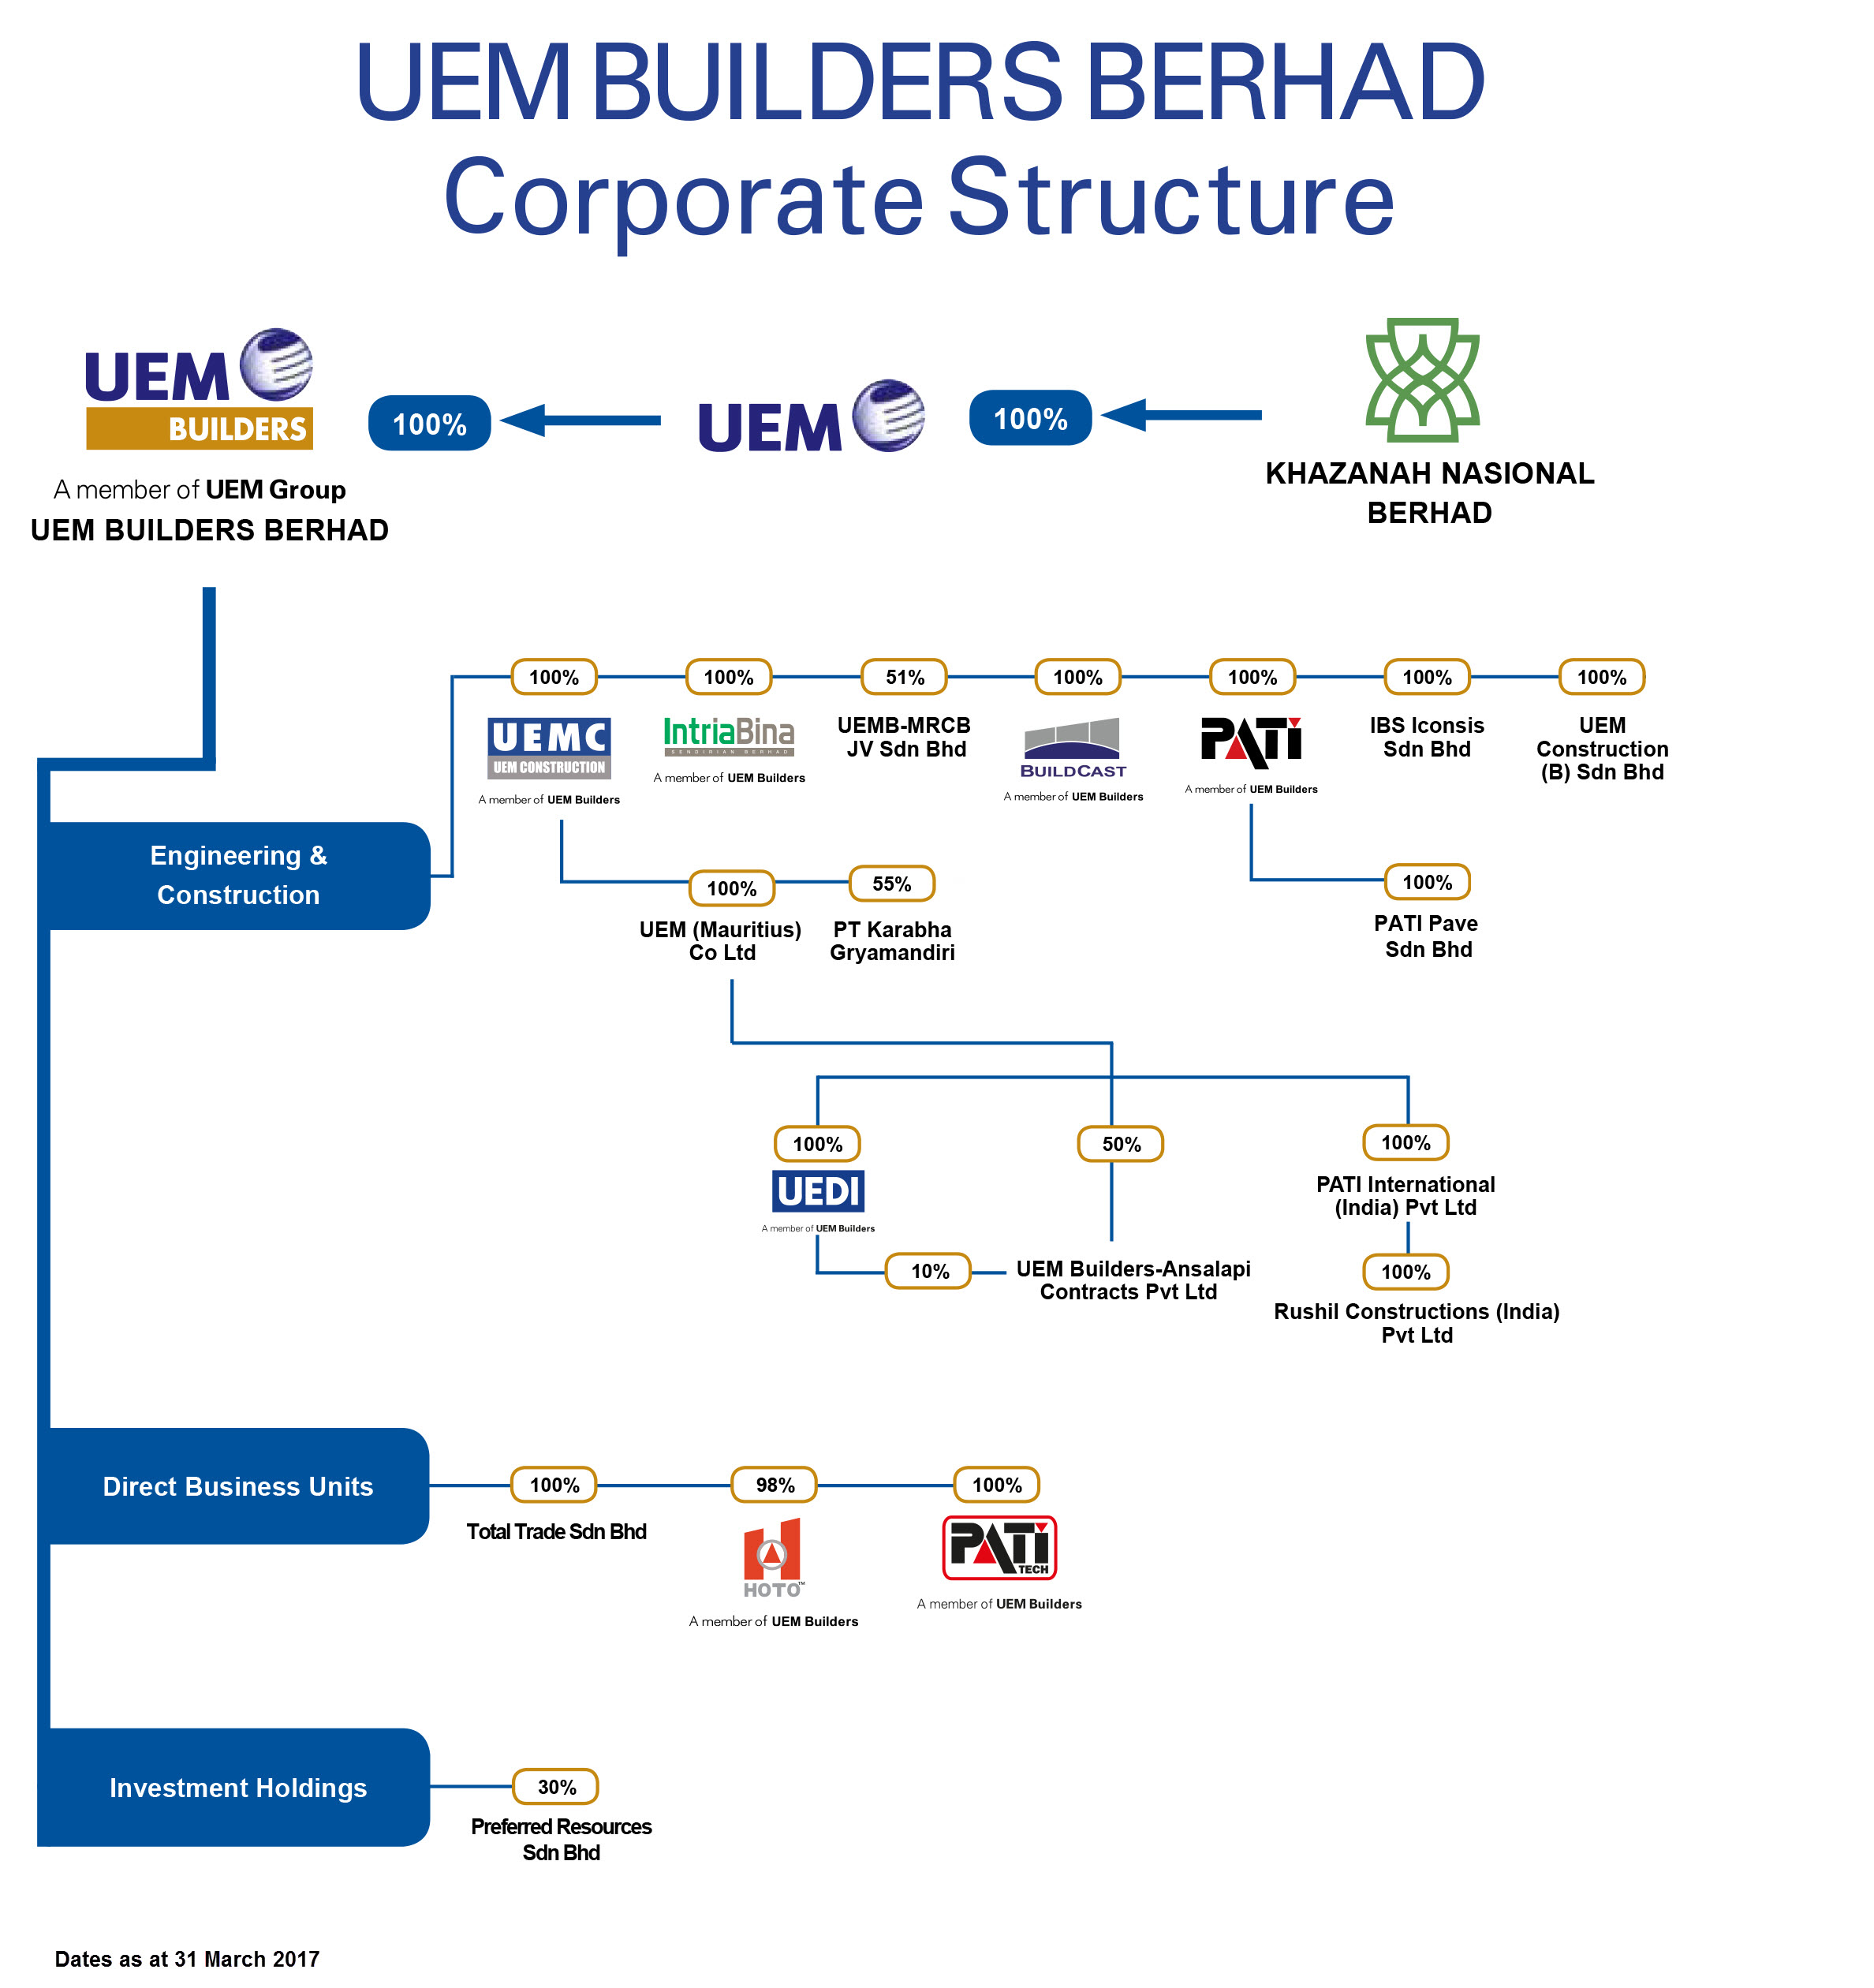 UEMB Corporate Structure 03 April 2017